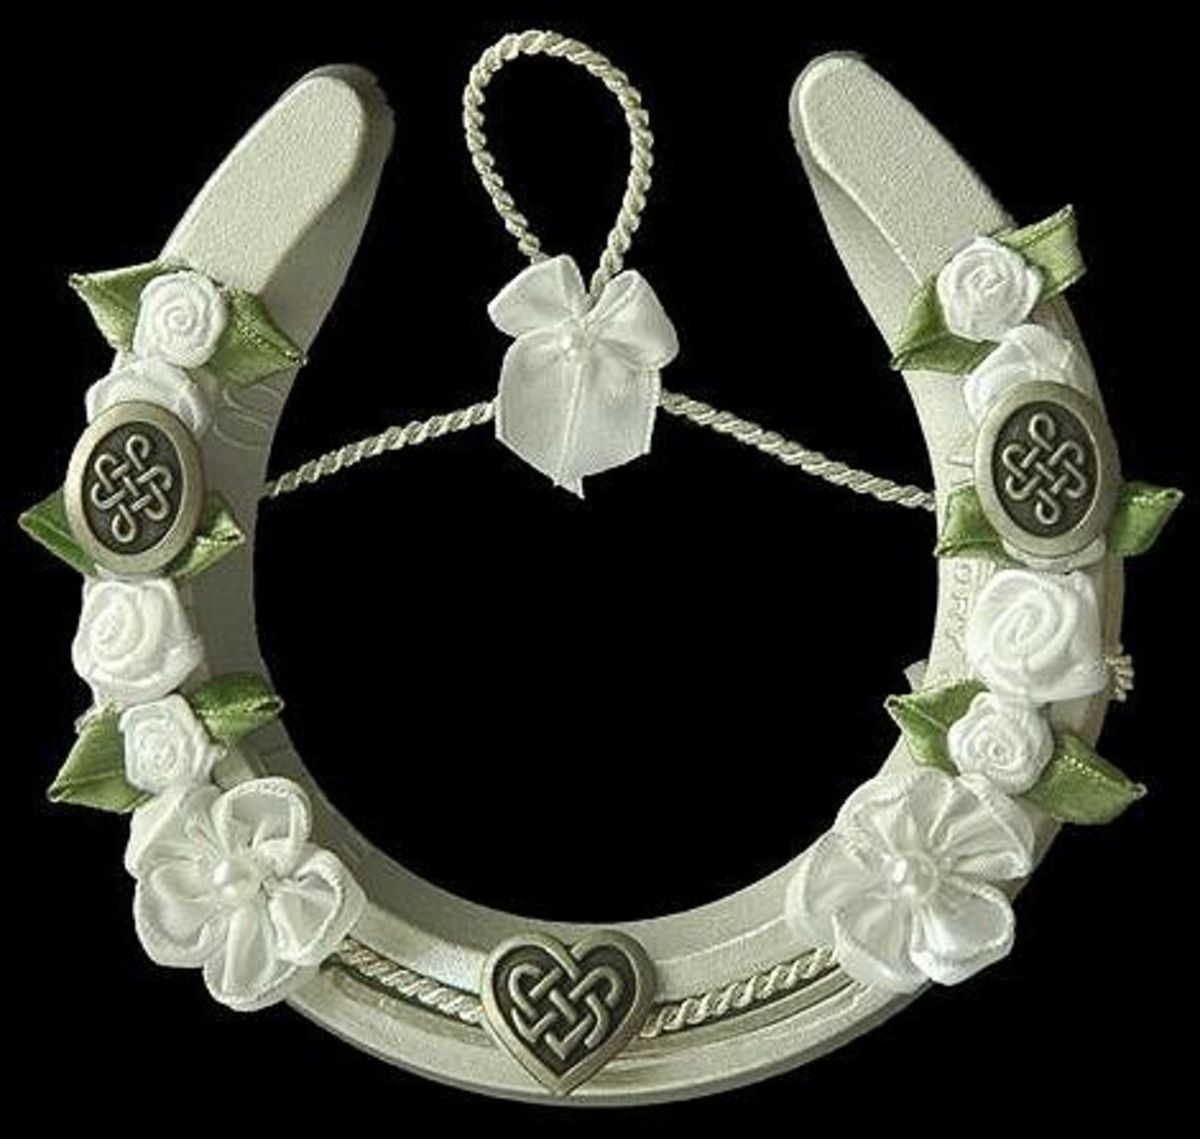 Irish Wedding Gifts Traditions: Irish Wedding Customs, Superstitions, And Lucky Traditions